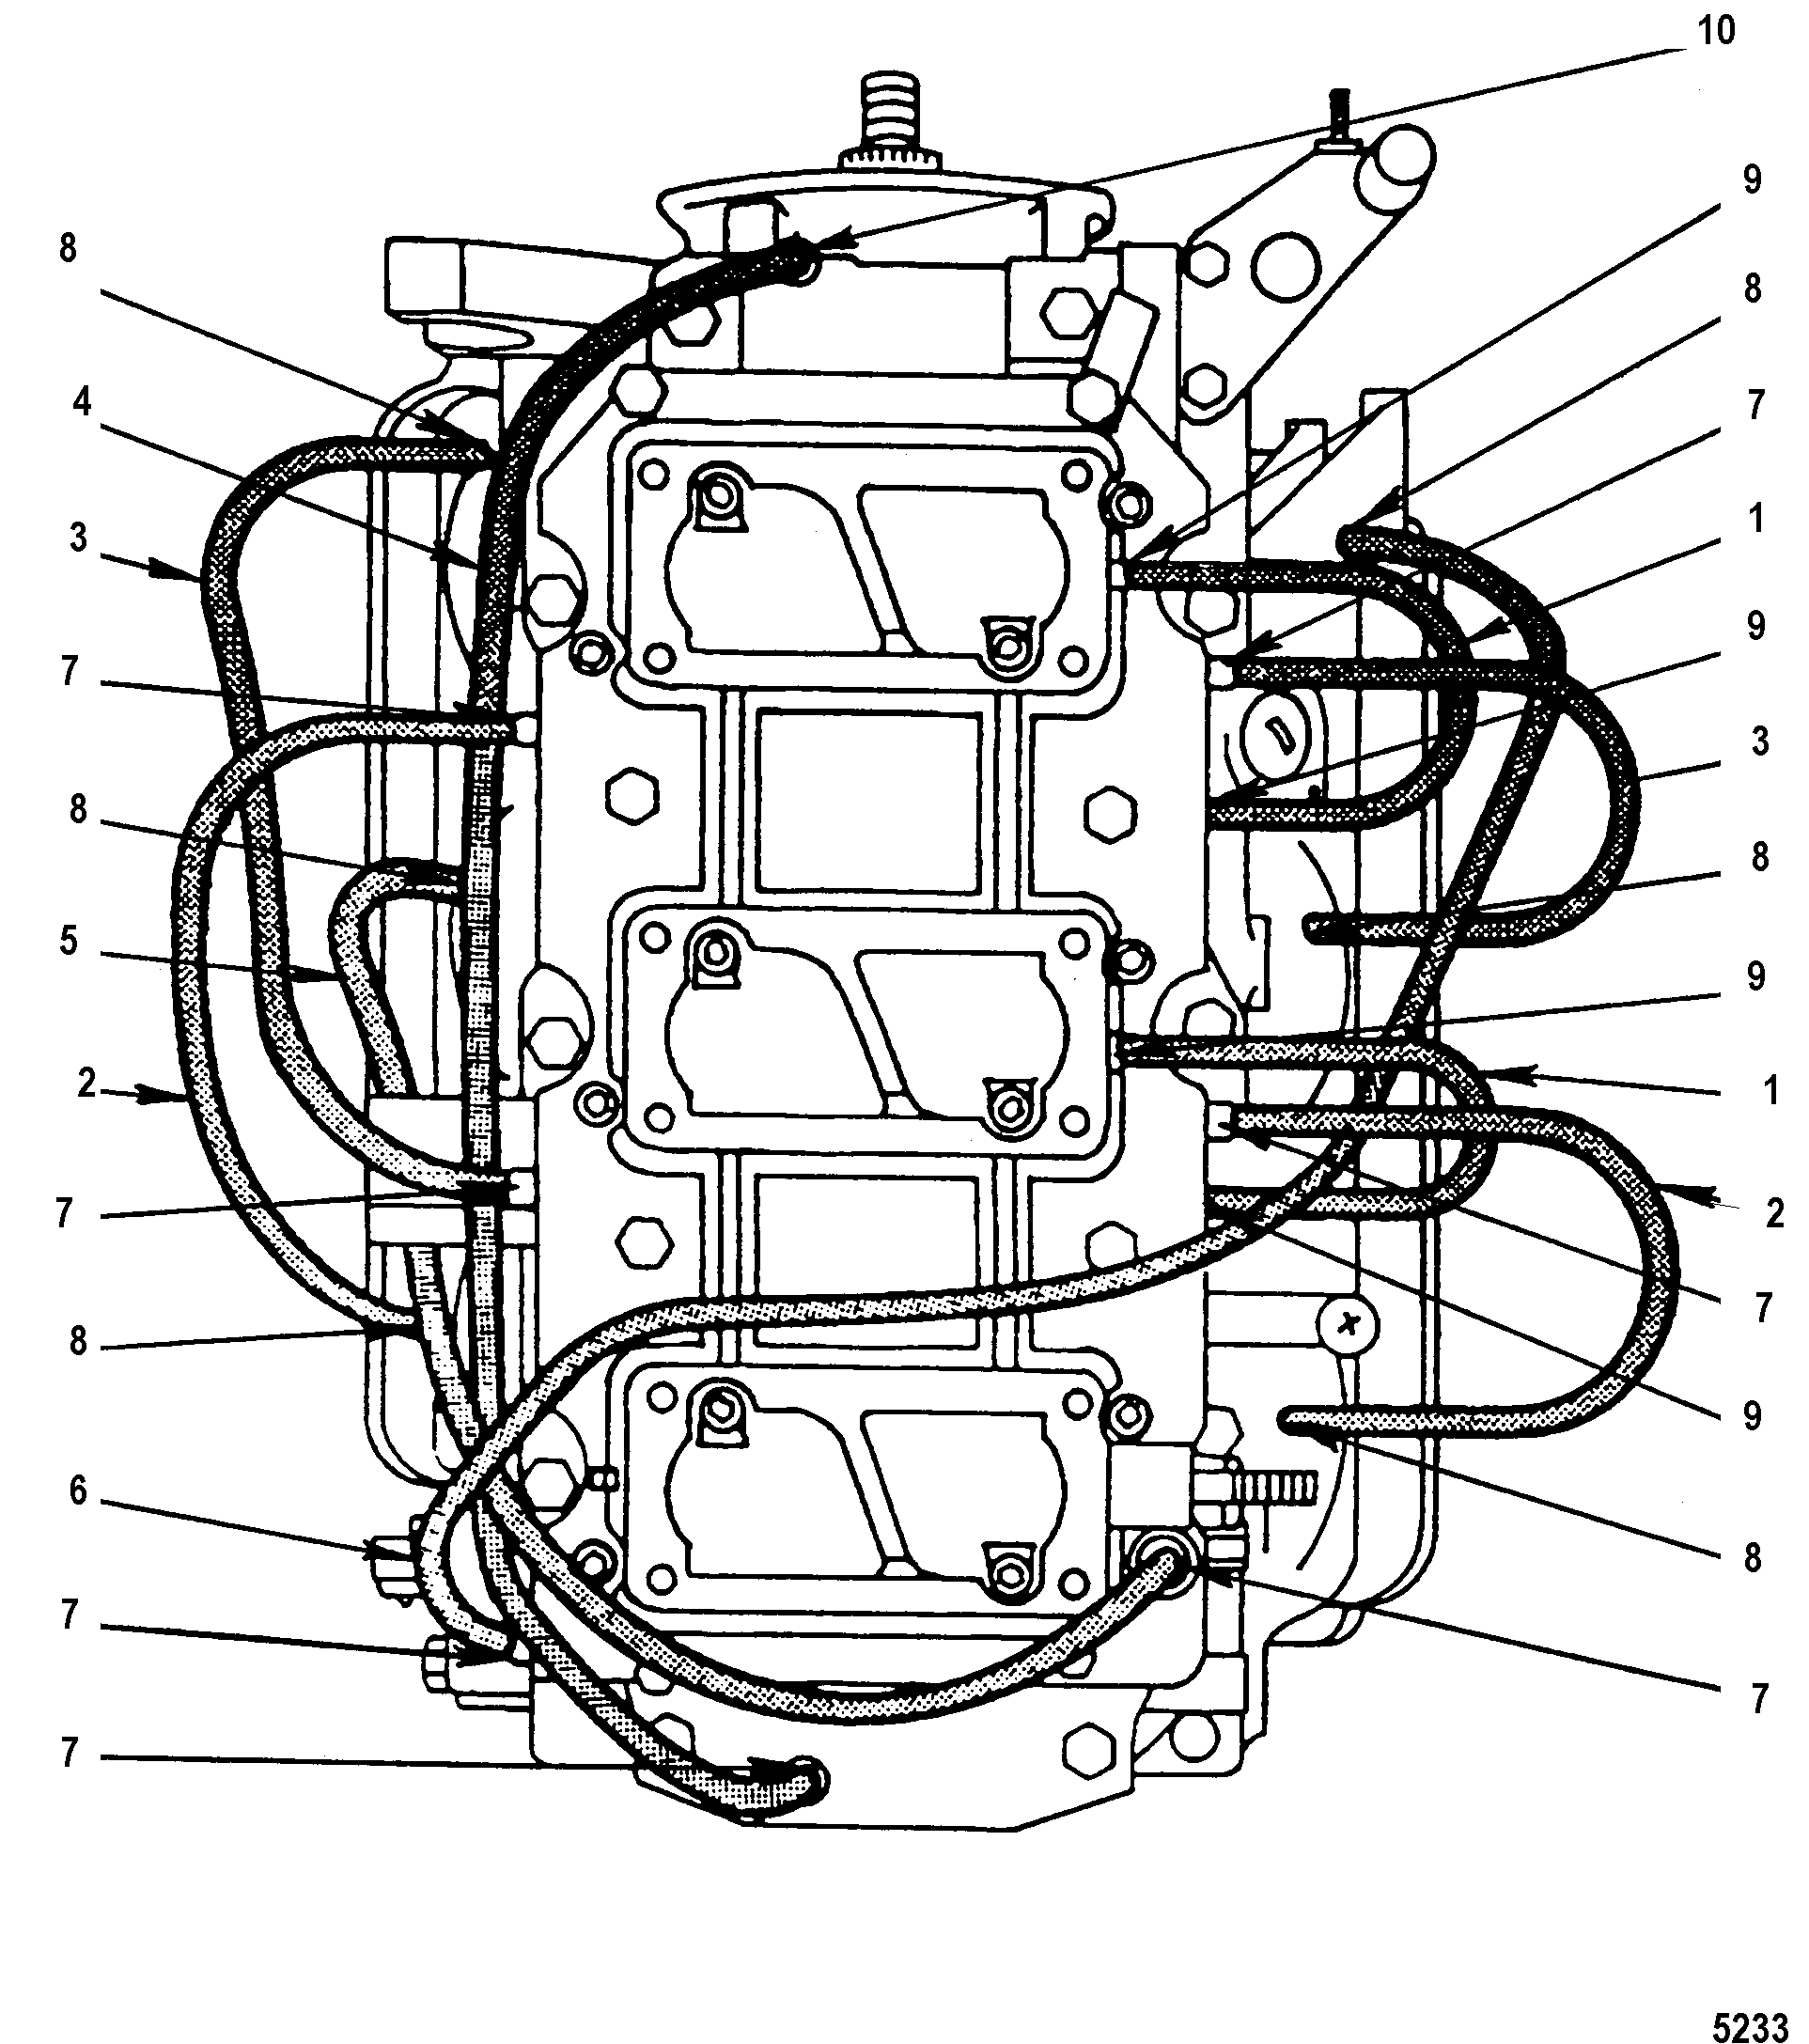 Yamaha 150 Wiring Diagram